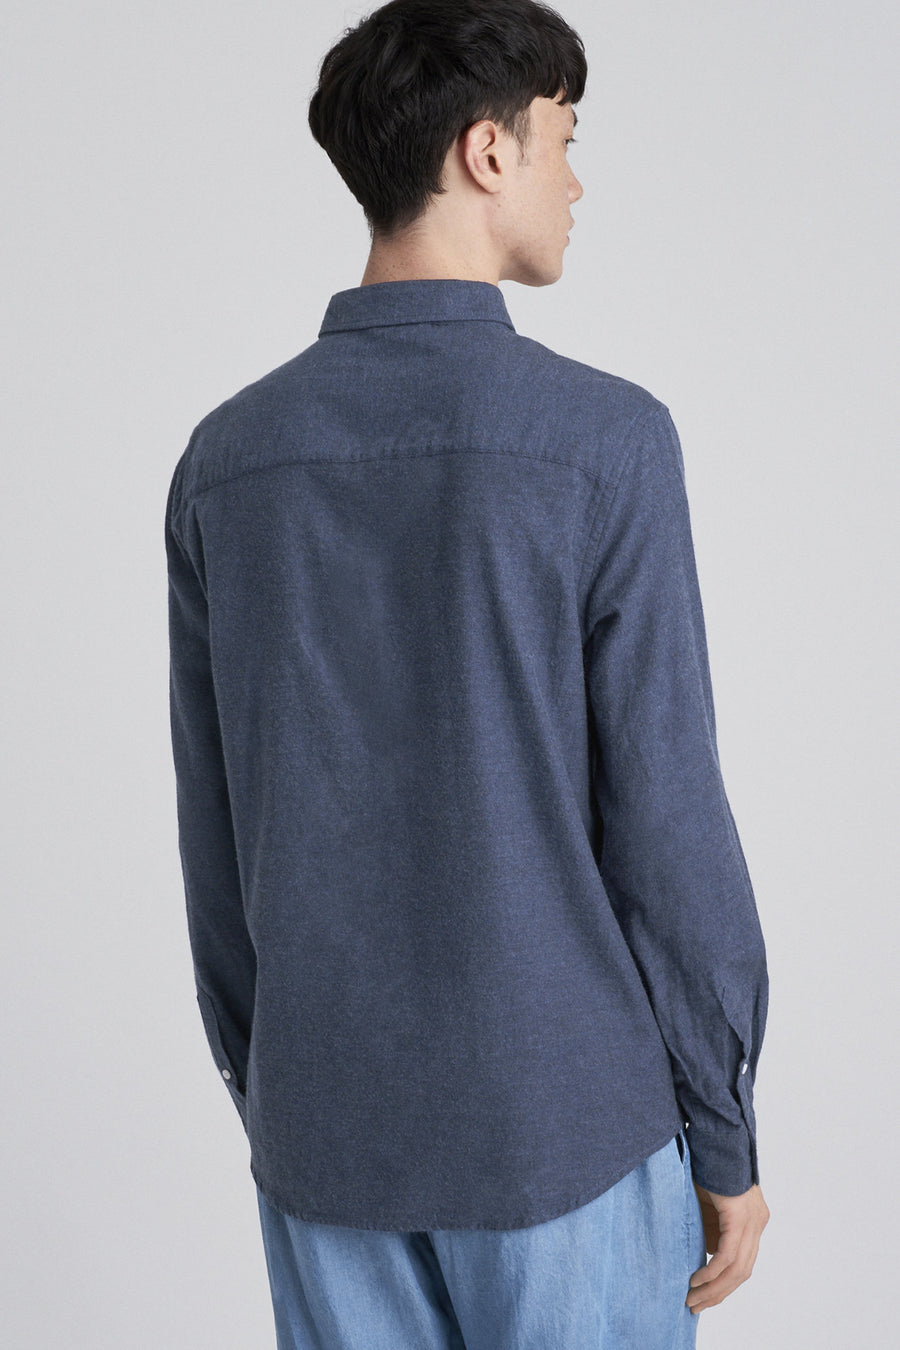 Crosby Flannel L/S Shirt - Midnight - Pavilion